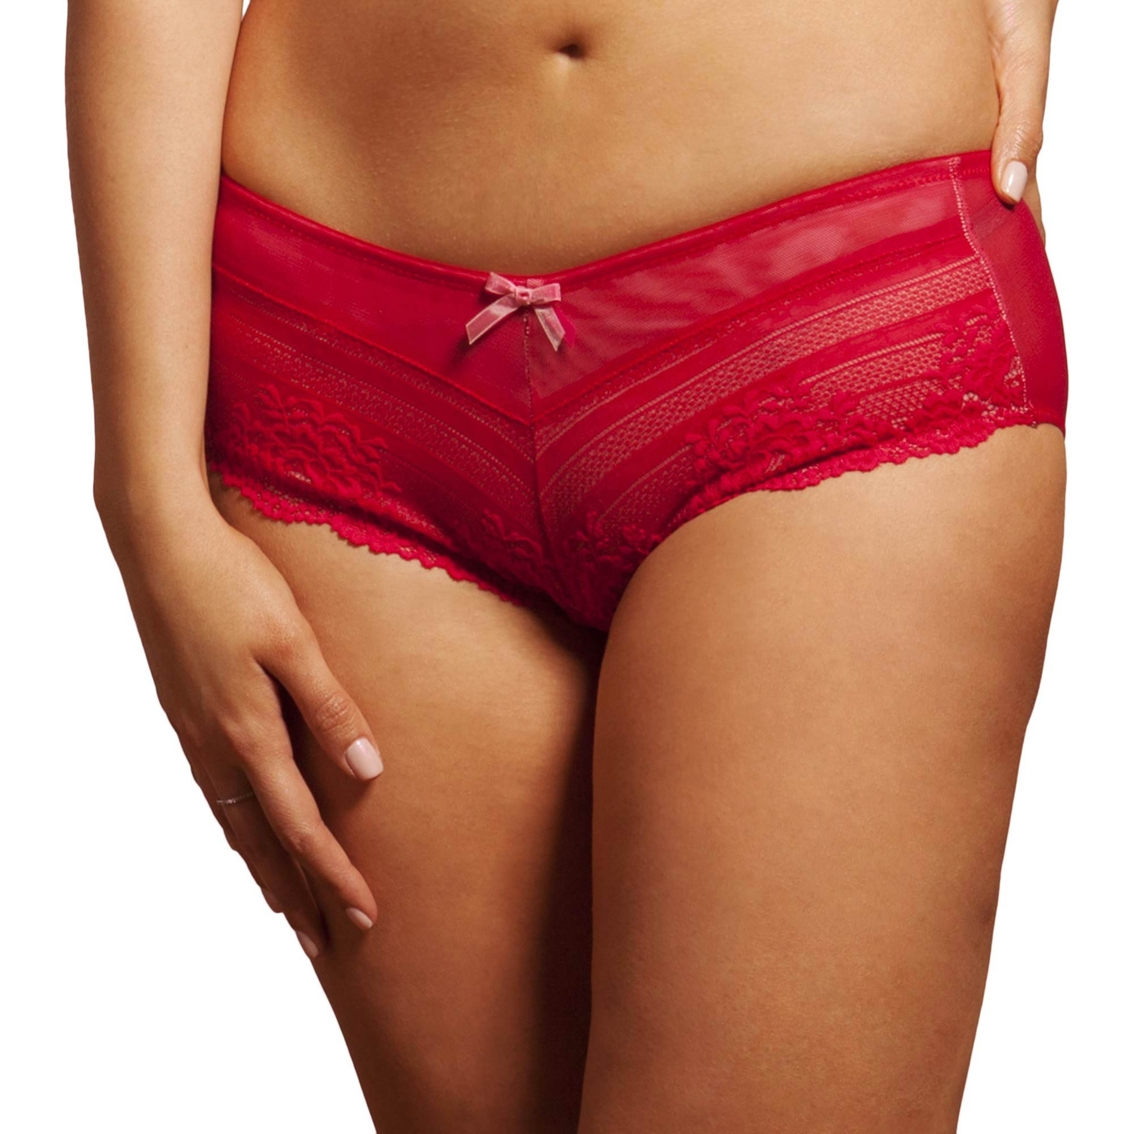 In recent years, boyshort panties have emerged from the back of men's underwear drawer to the forefront of women's lingerie. Designed to resemble a man's brief, the women's boy short panty features leg openings that cover the top portion of the thighs.